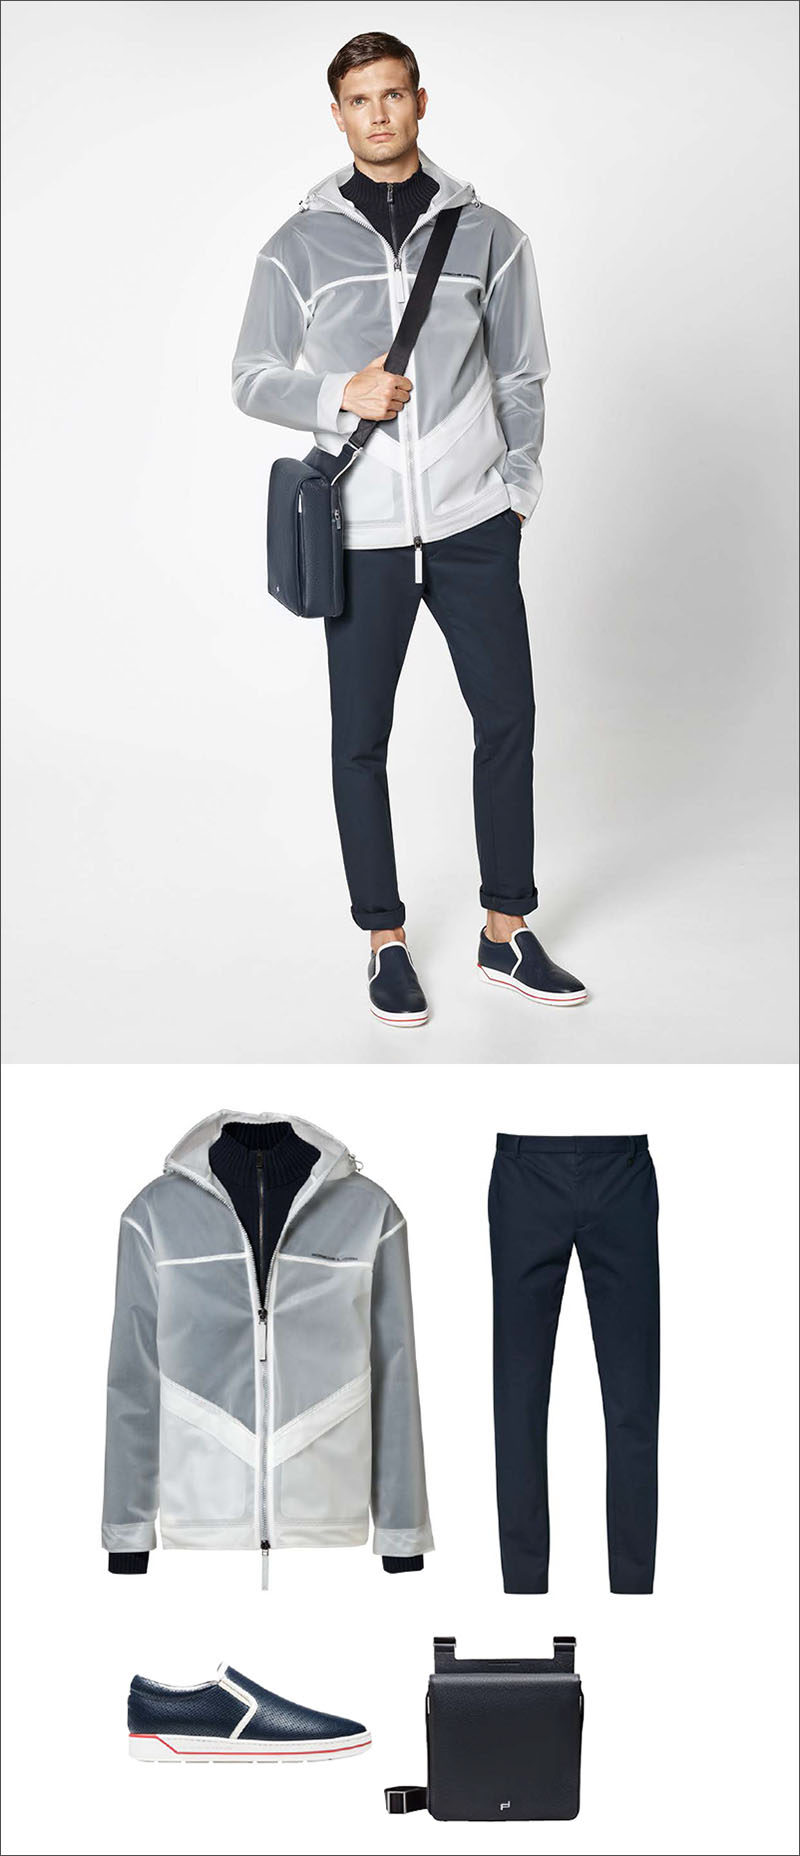 Men's Fashion Ideas - 17 Men's Outfits From Porsche Design's 2017 Spring/Summer Collection | This casual men's outfit, created by pairing a rain jacket with a built in sweater with a pair of navy blue cotton pants, a pair of navy blue slip on shoes, and a navy leather shoulder bag, is perfect for rainy spring days.